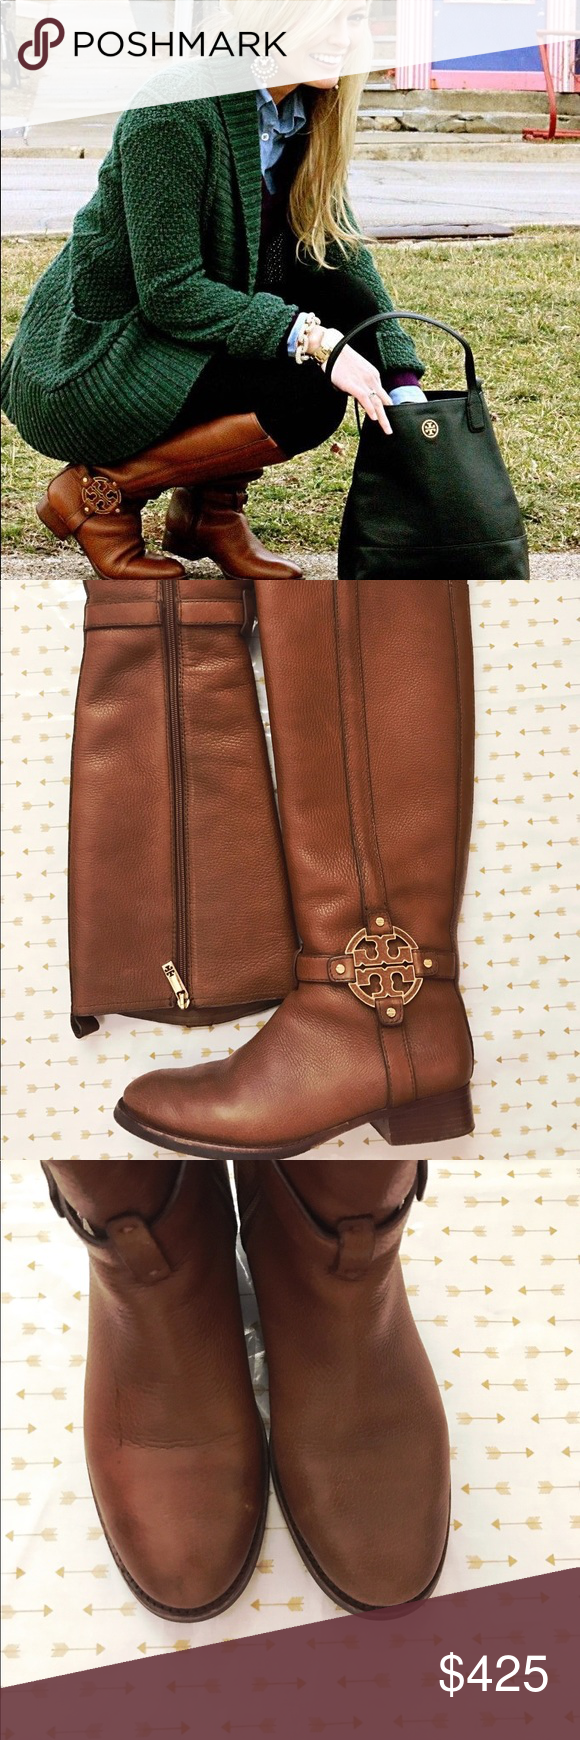 Tory Burch Amanda boots These beautiful and classic boots are in EXCELLENT condition! Worn less than 4x! They're super soft and the pebbles leather is soft and supple. One boot has a water stain as shown in final photo but it's not too noticeable as shown in 3rd photo. May come off if cleaned properly, I just have not taken the time to do so. Will not come with box! Color is called almond.  These are not wide calf circumference ❌ NO TRADES/ NO PP/ PRICE IS FIRM Tory Burch Shoes Heeled Boots